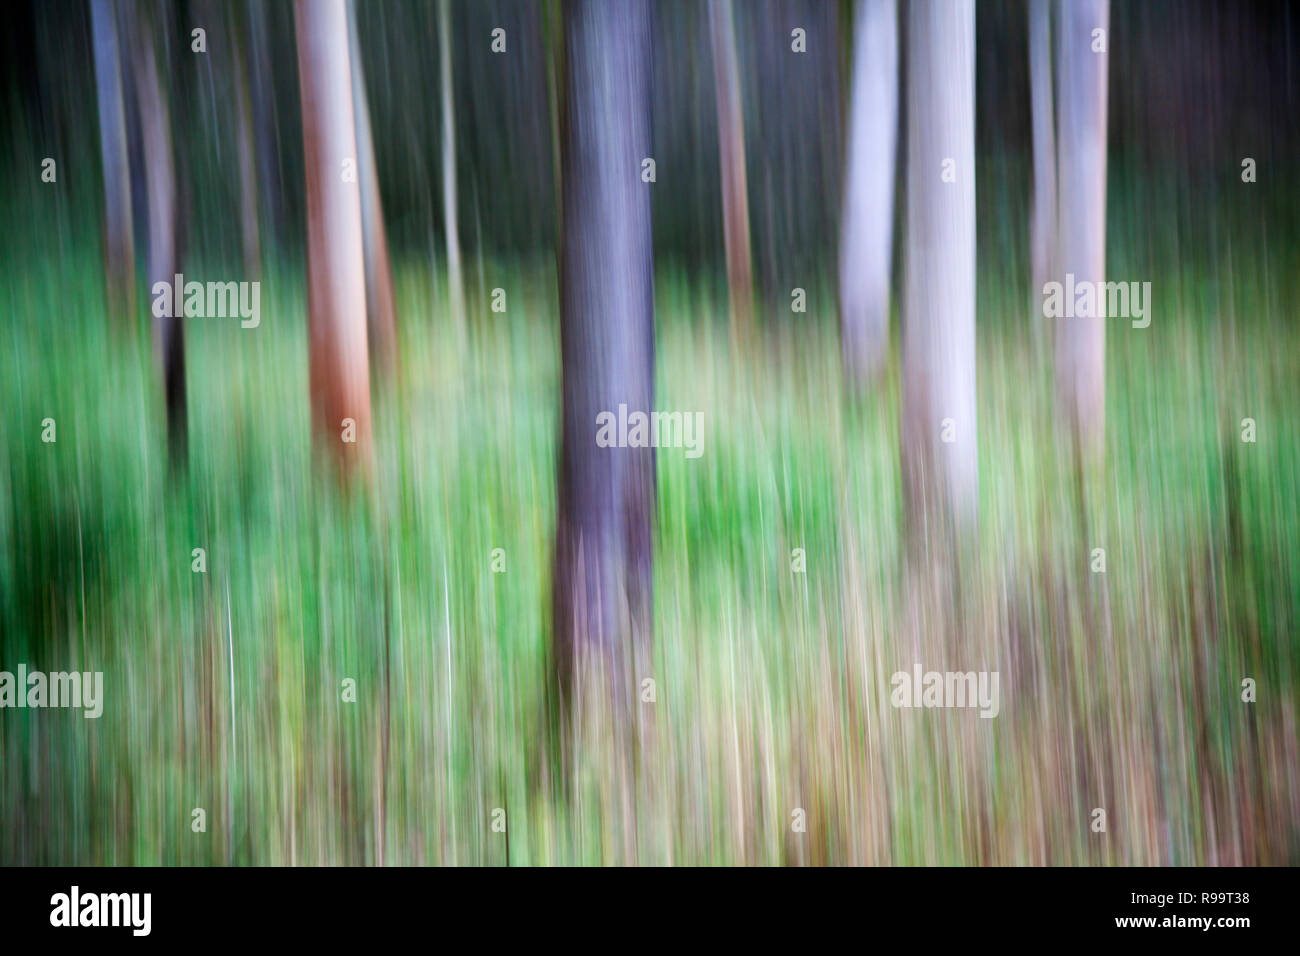 ICM Intentional Camera Movement at Strid Wood in Autumn, Bolton Abbey, North Yorkshire Dales - Stock Image